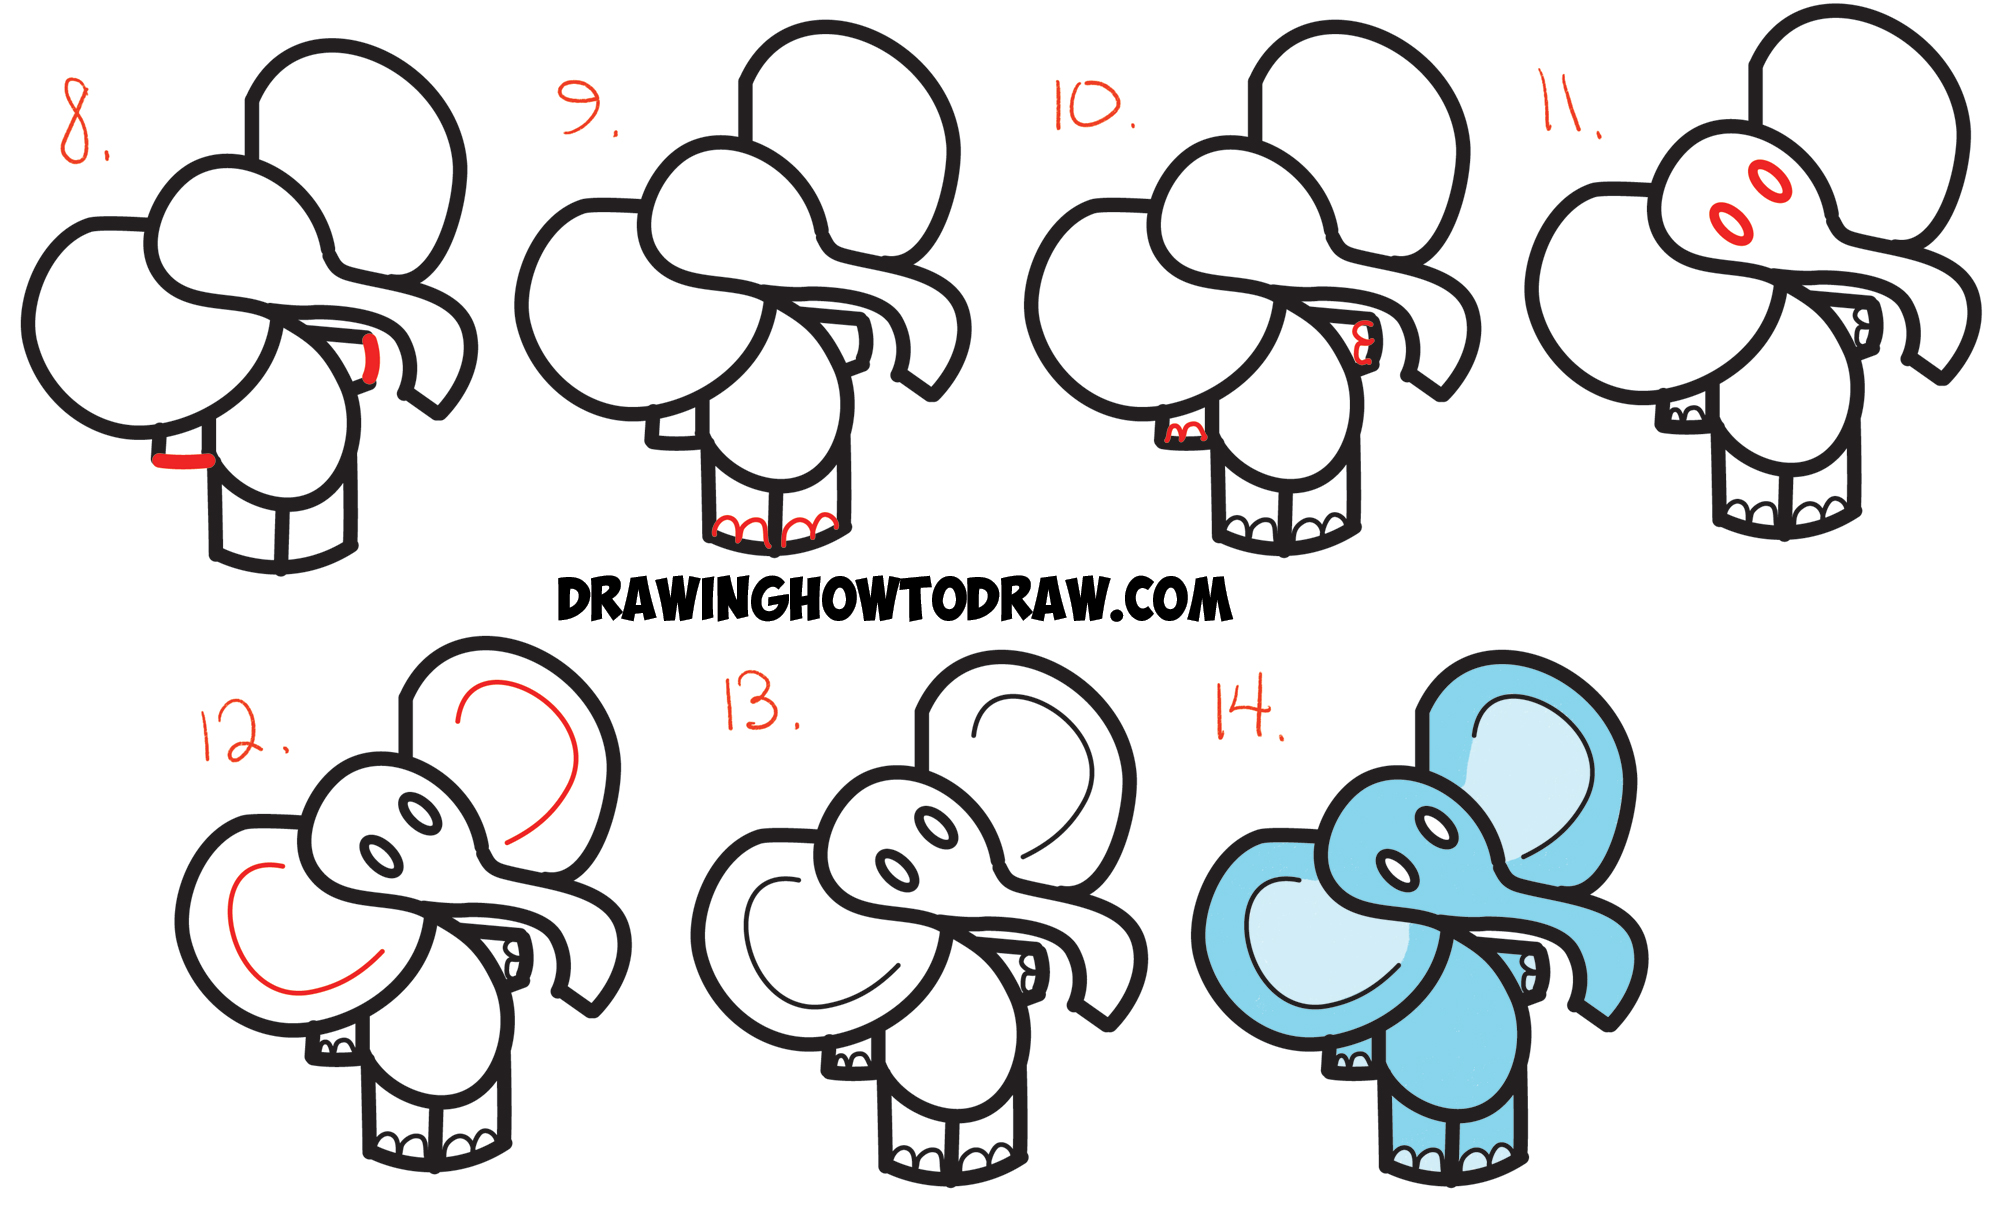 learn how to draw cute cartoon elephant from the dollar sign simple steps drawing lesson